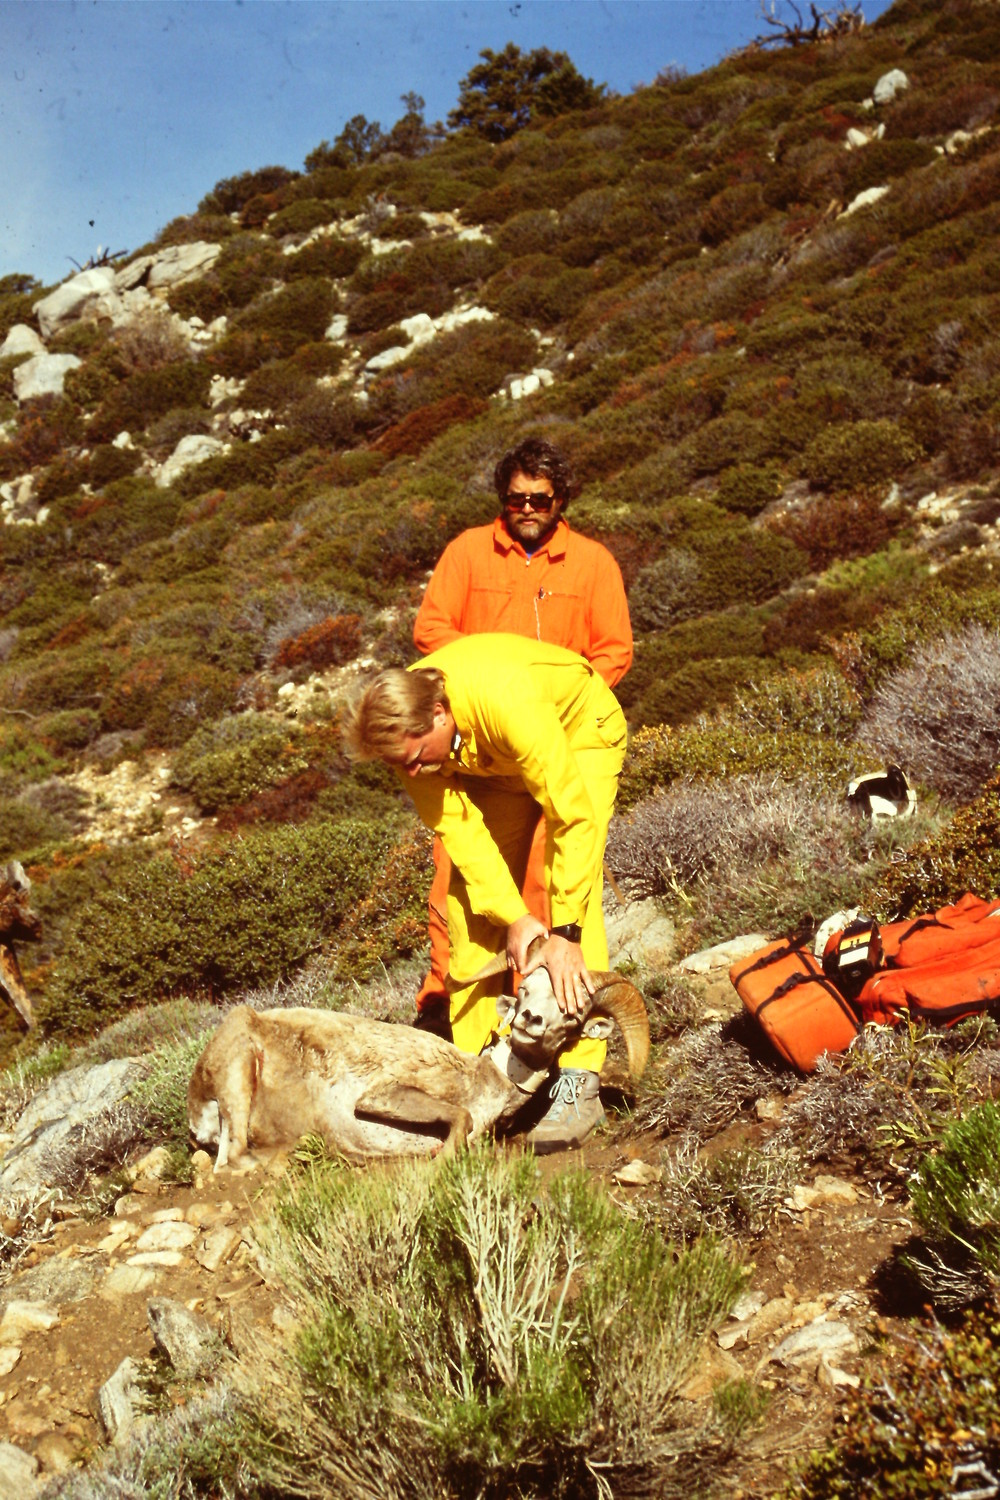 Tim Williamson (back) and Dave Jessup capturing Bighorn sheep in the San Jacinto Mountains in the early 1990s.